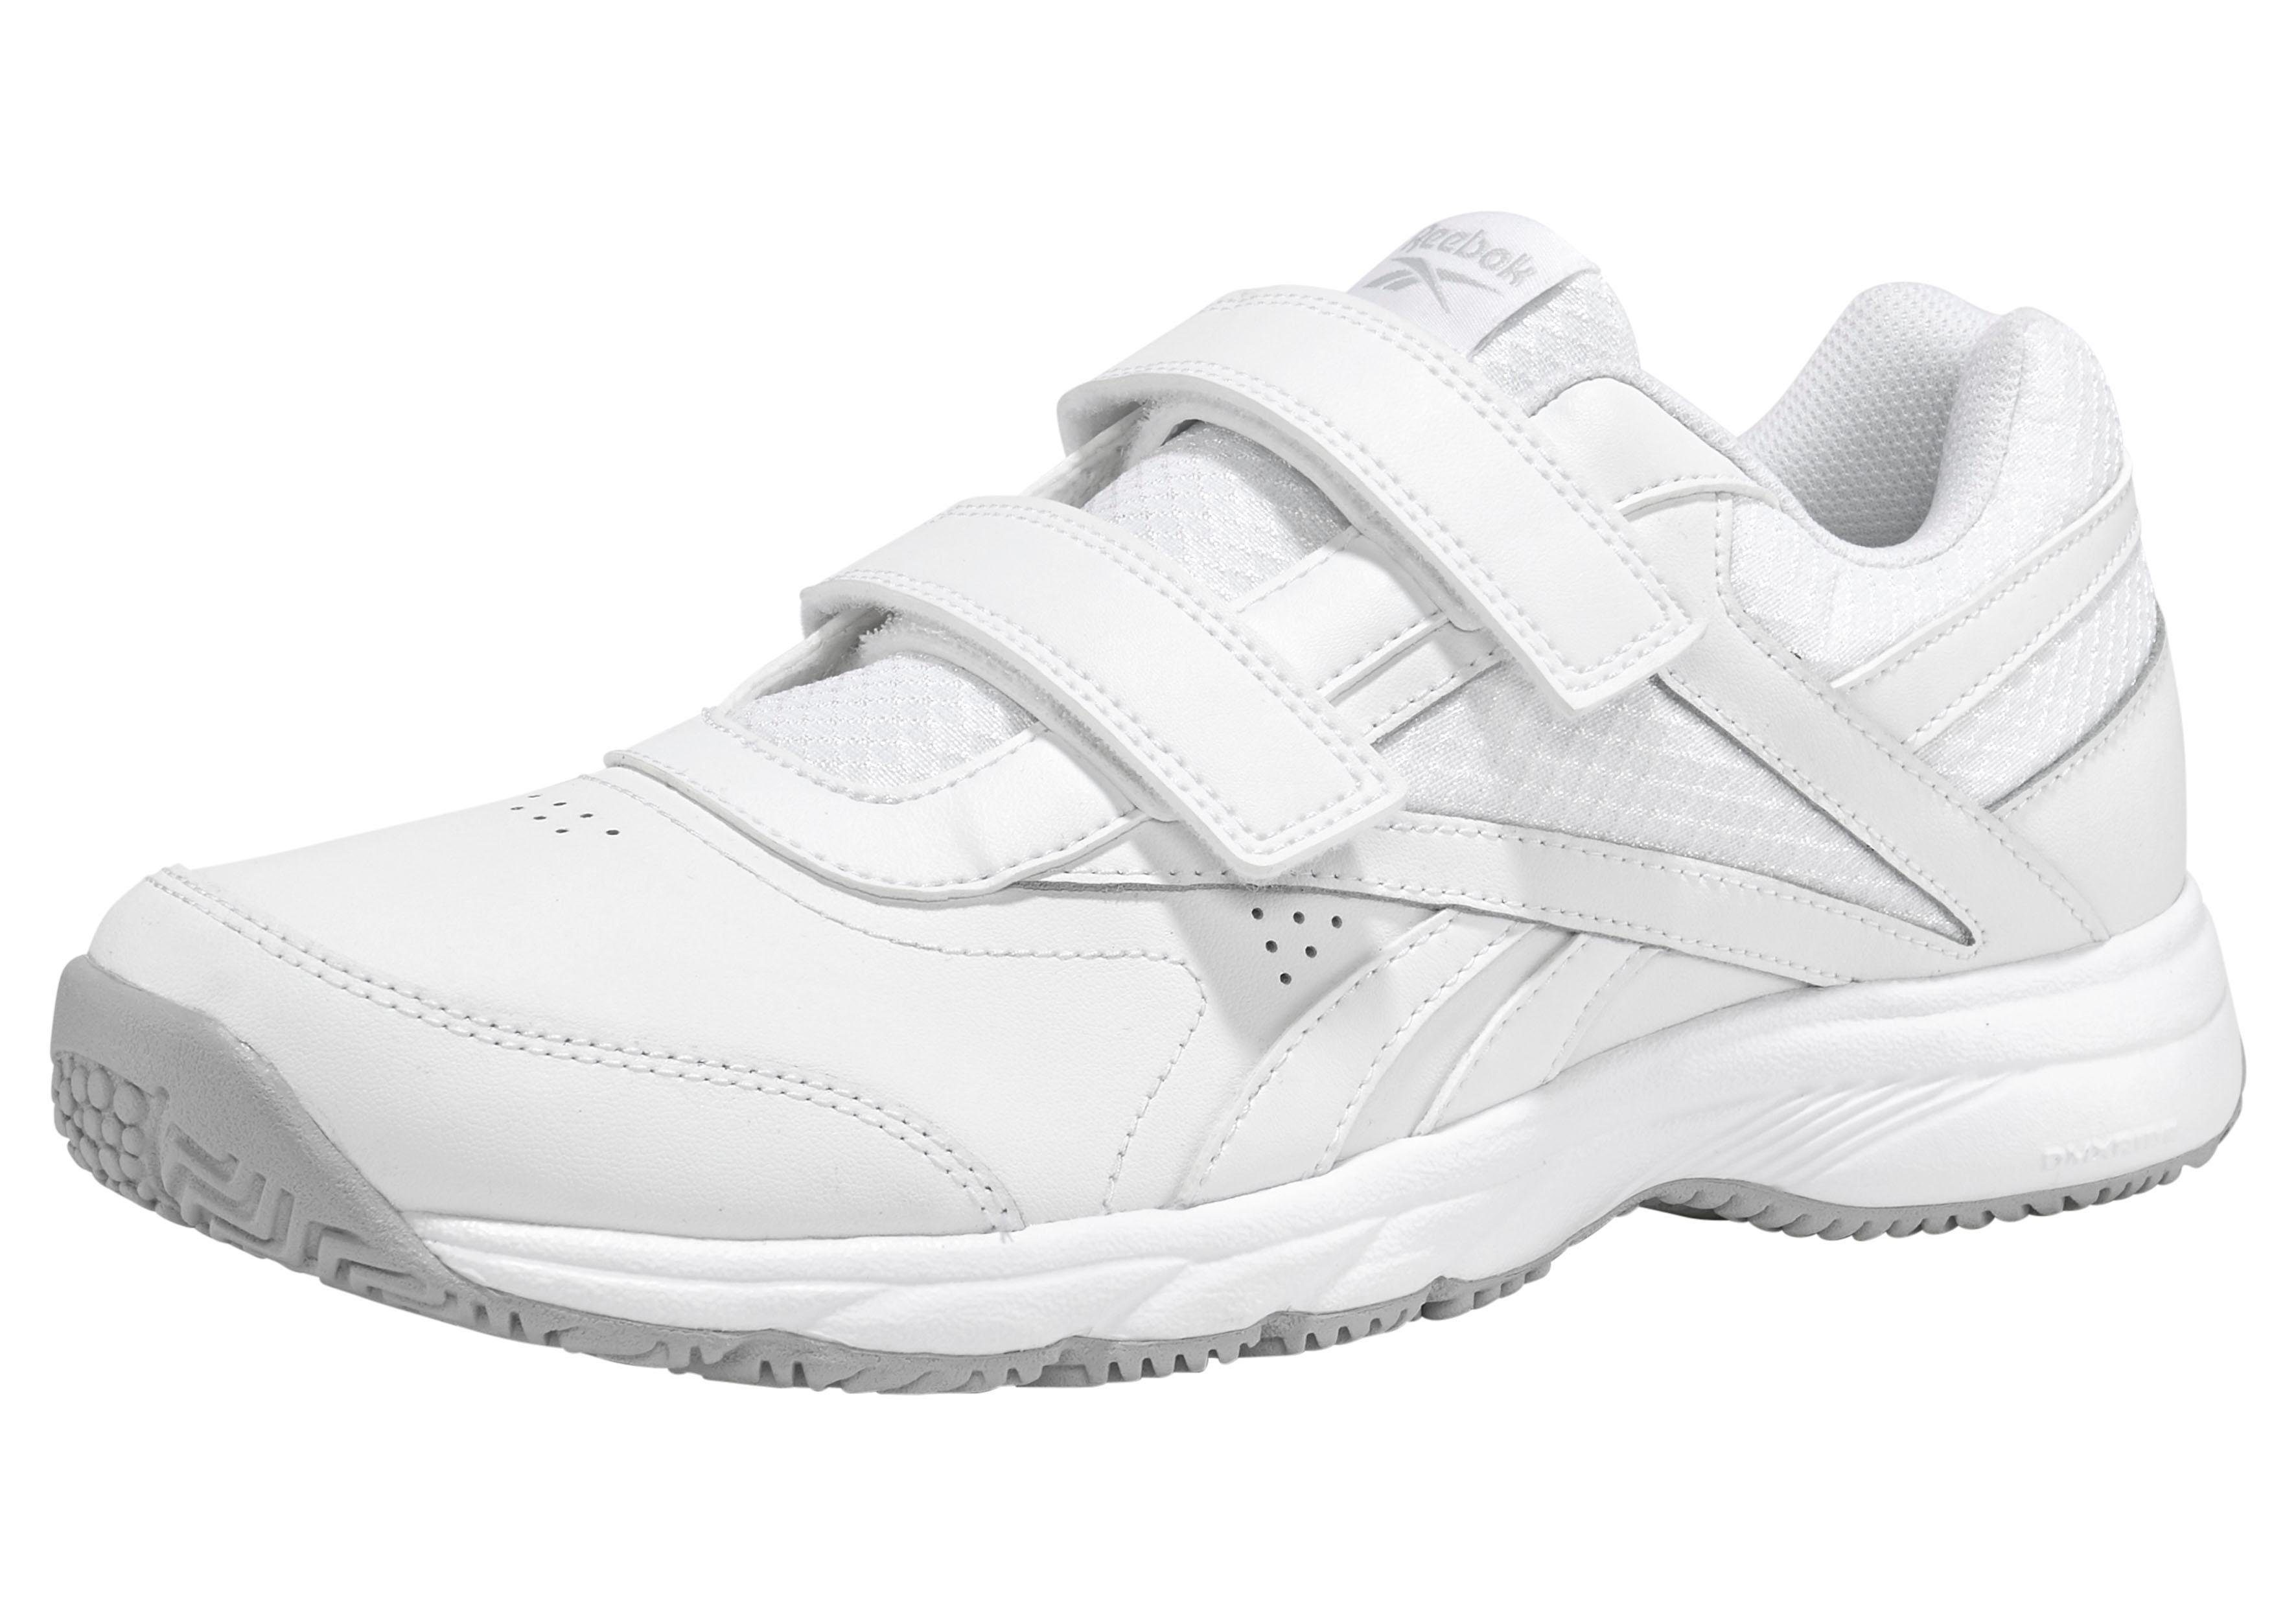 Reebok »WORK N CUSHION 4.0 W« Walkingschuh kaufen | OTTO